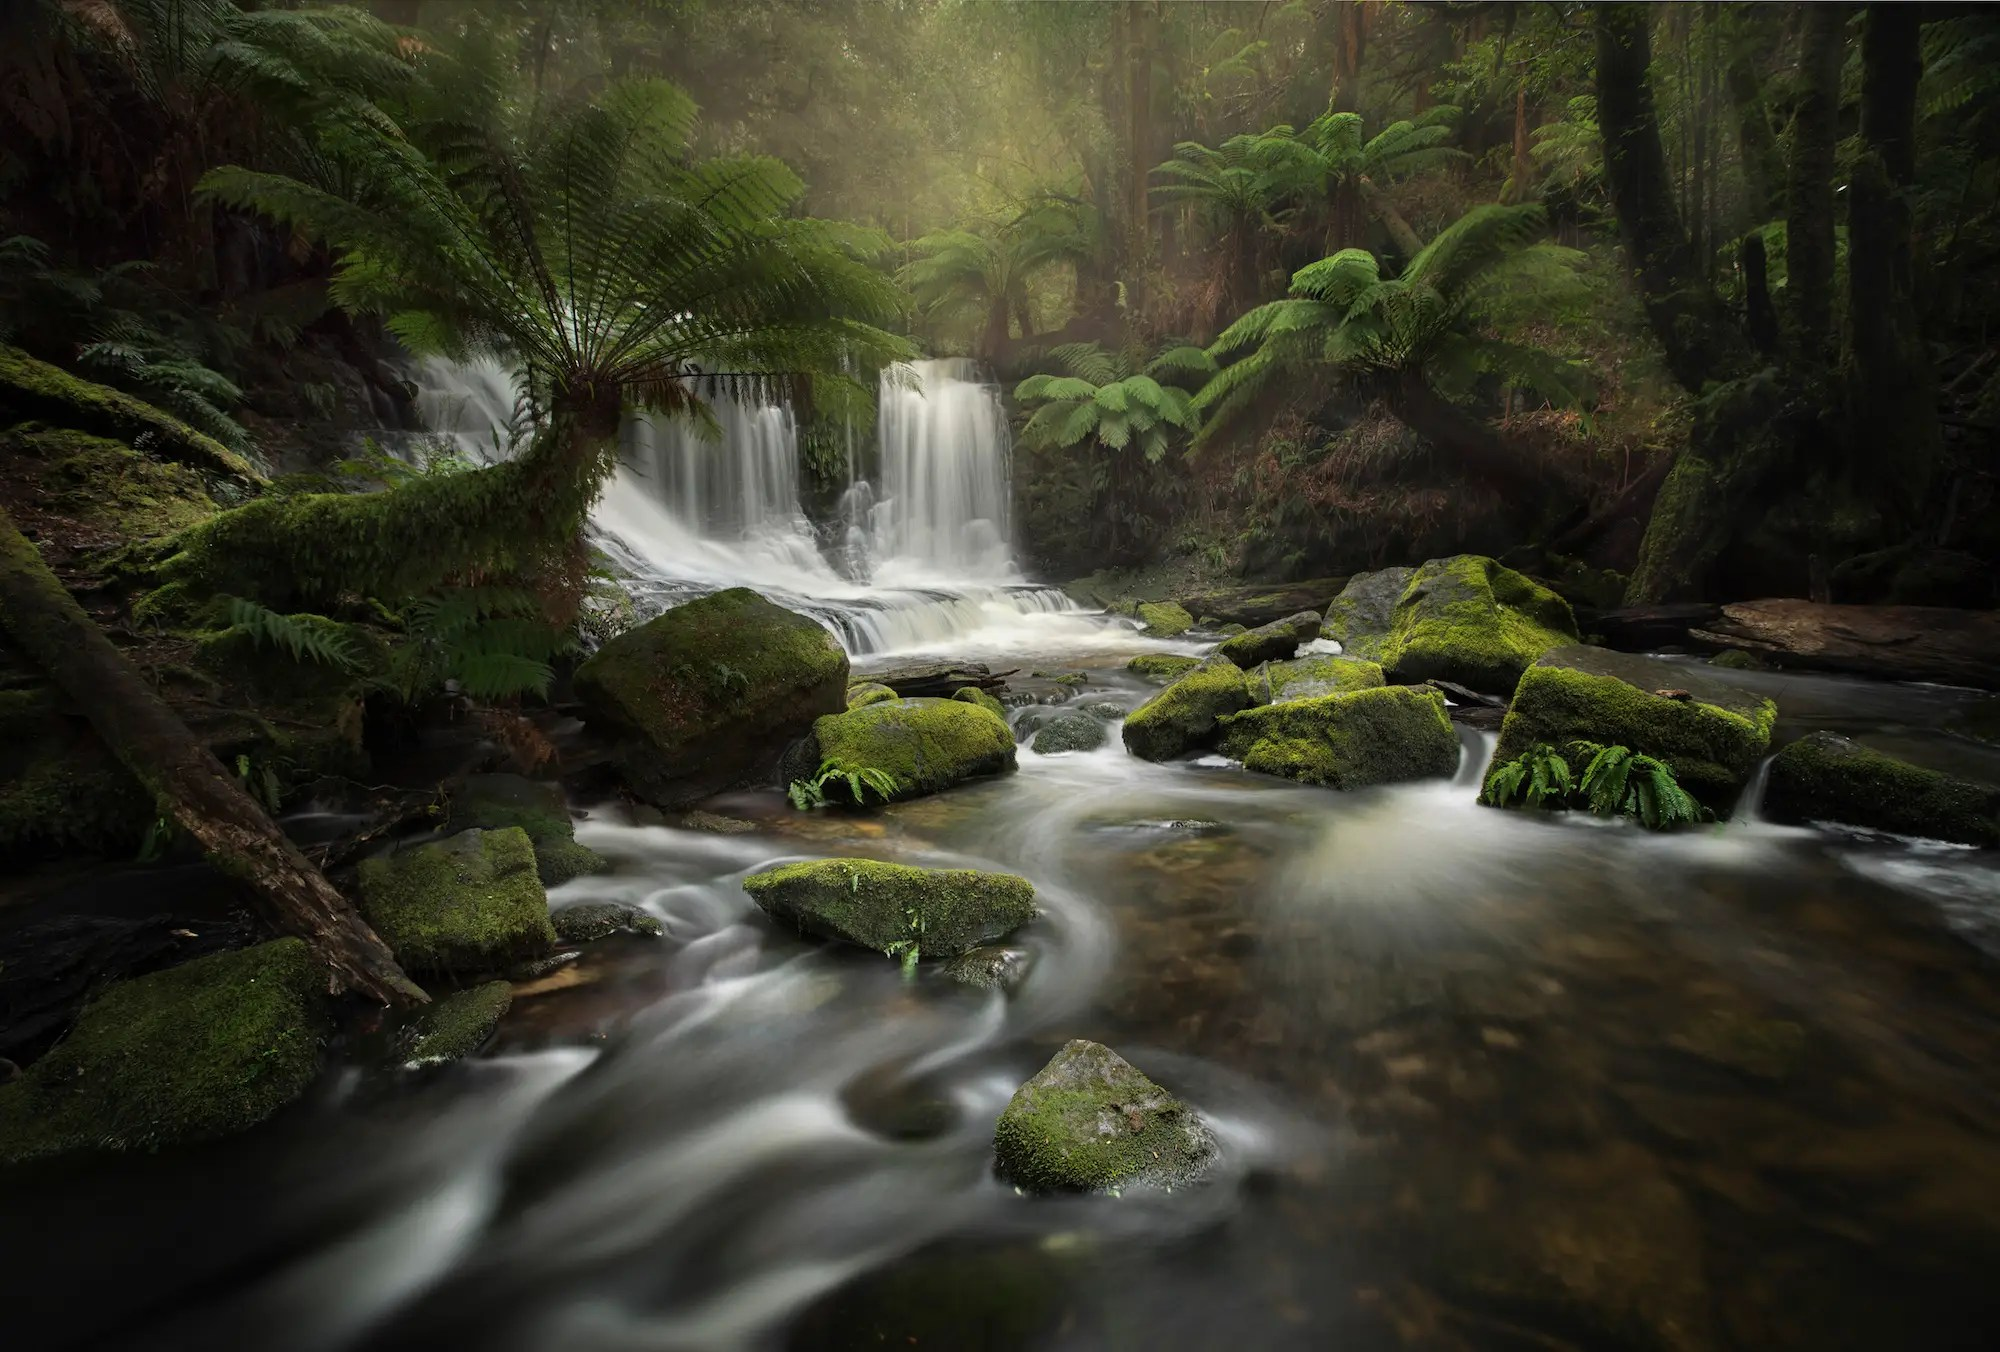 Here in a third photo from the second-place body of work, she captures the constant motion of water at Mt. Field National Park in Tasmania, Australia.